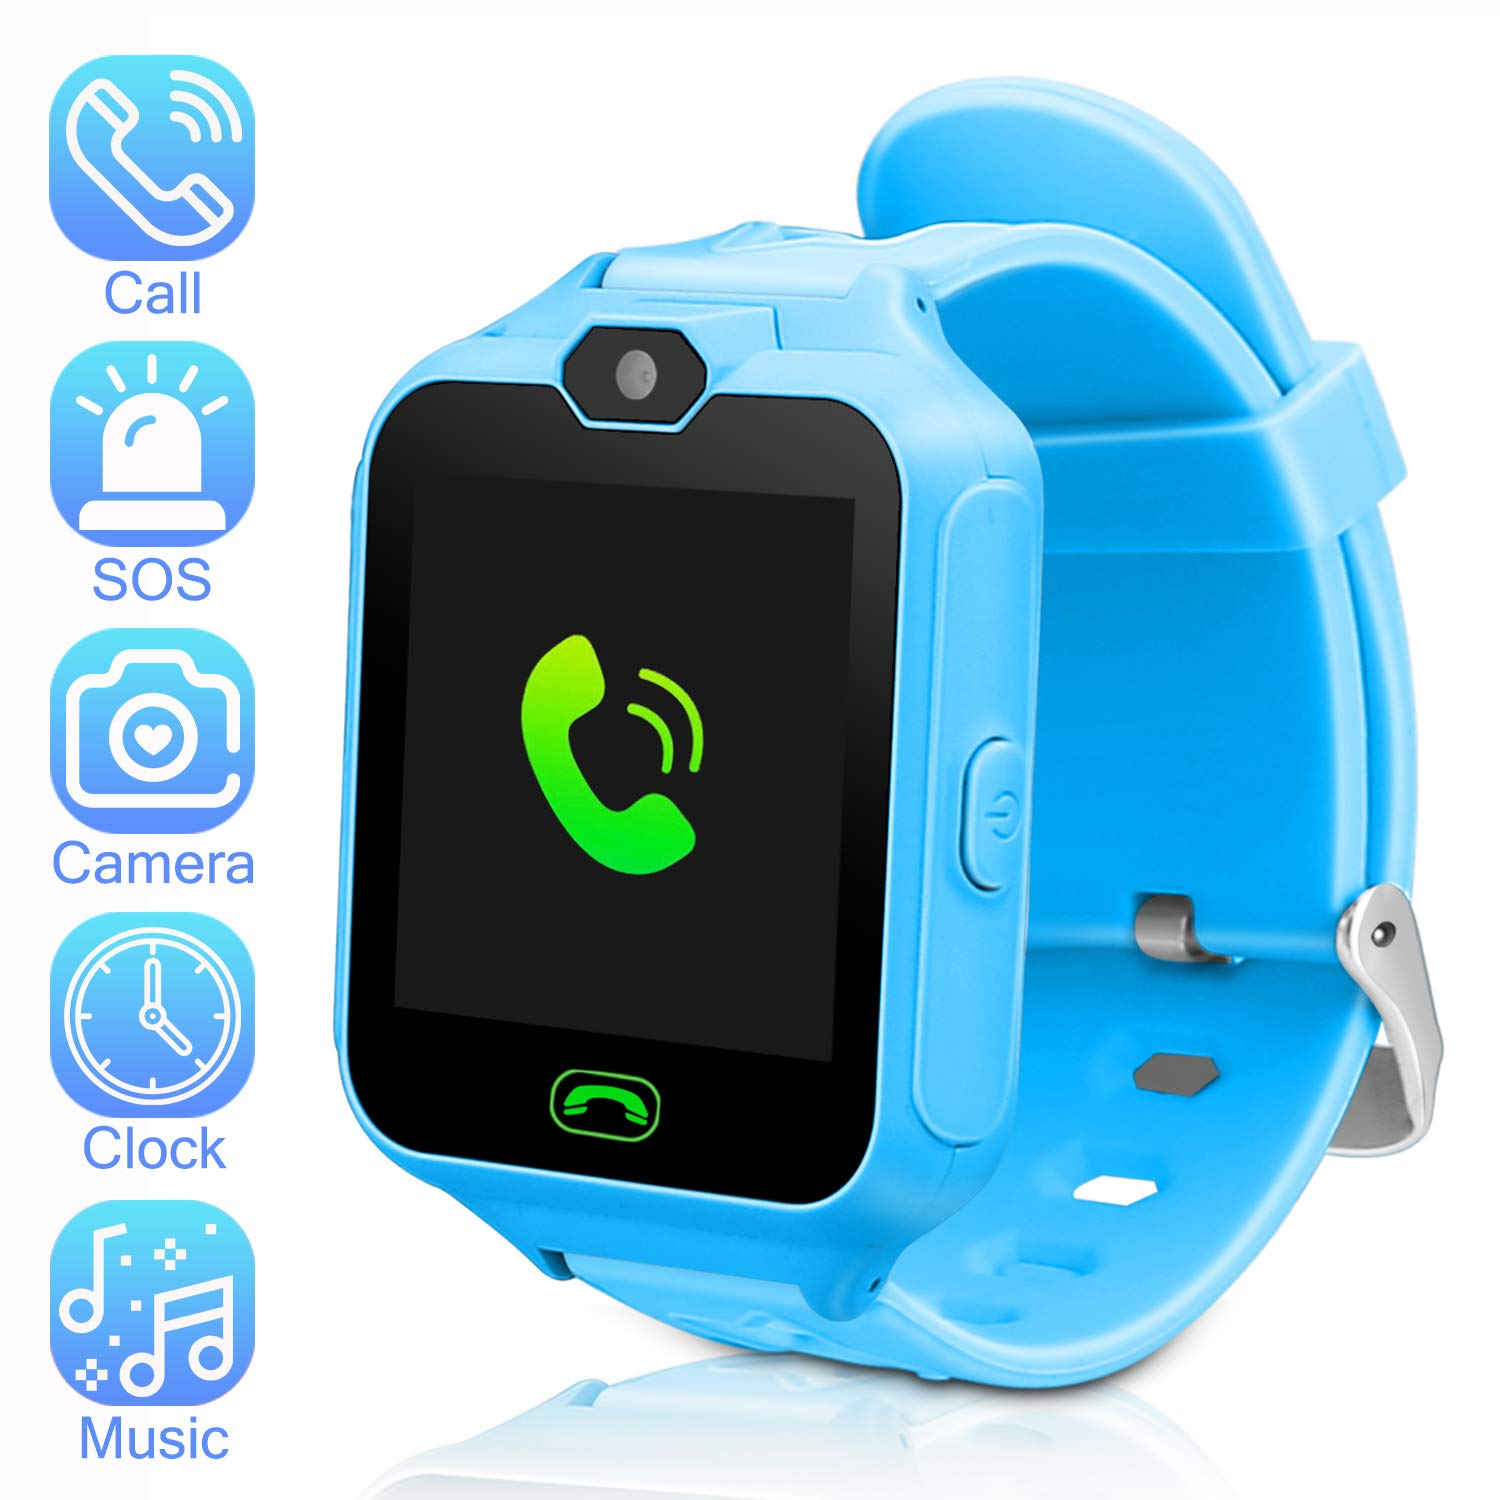 DUIWOIM Kids Smartwatch Phone Watch Mini Digital Camera with 1.44 Touch Screen Music Player Alarm Clock Calendar Calculator Birthday Gift for Boys and ...